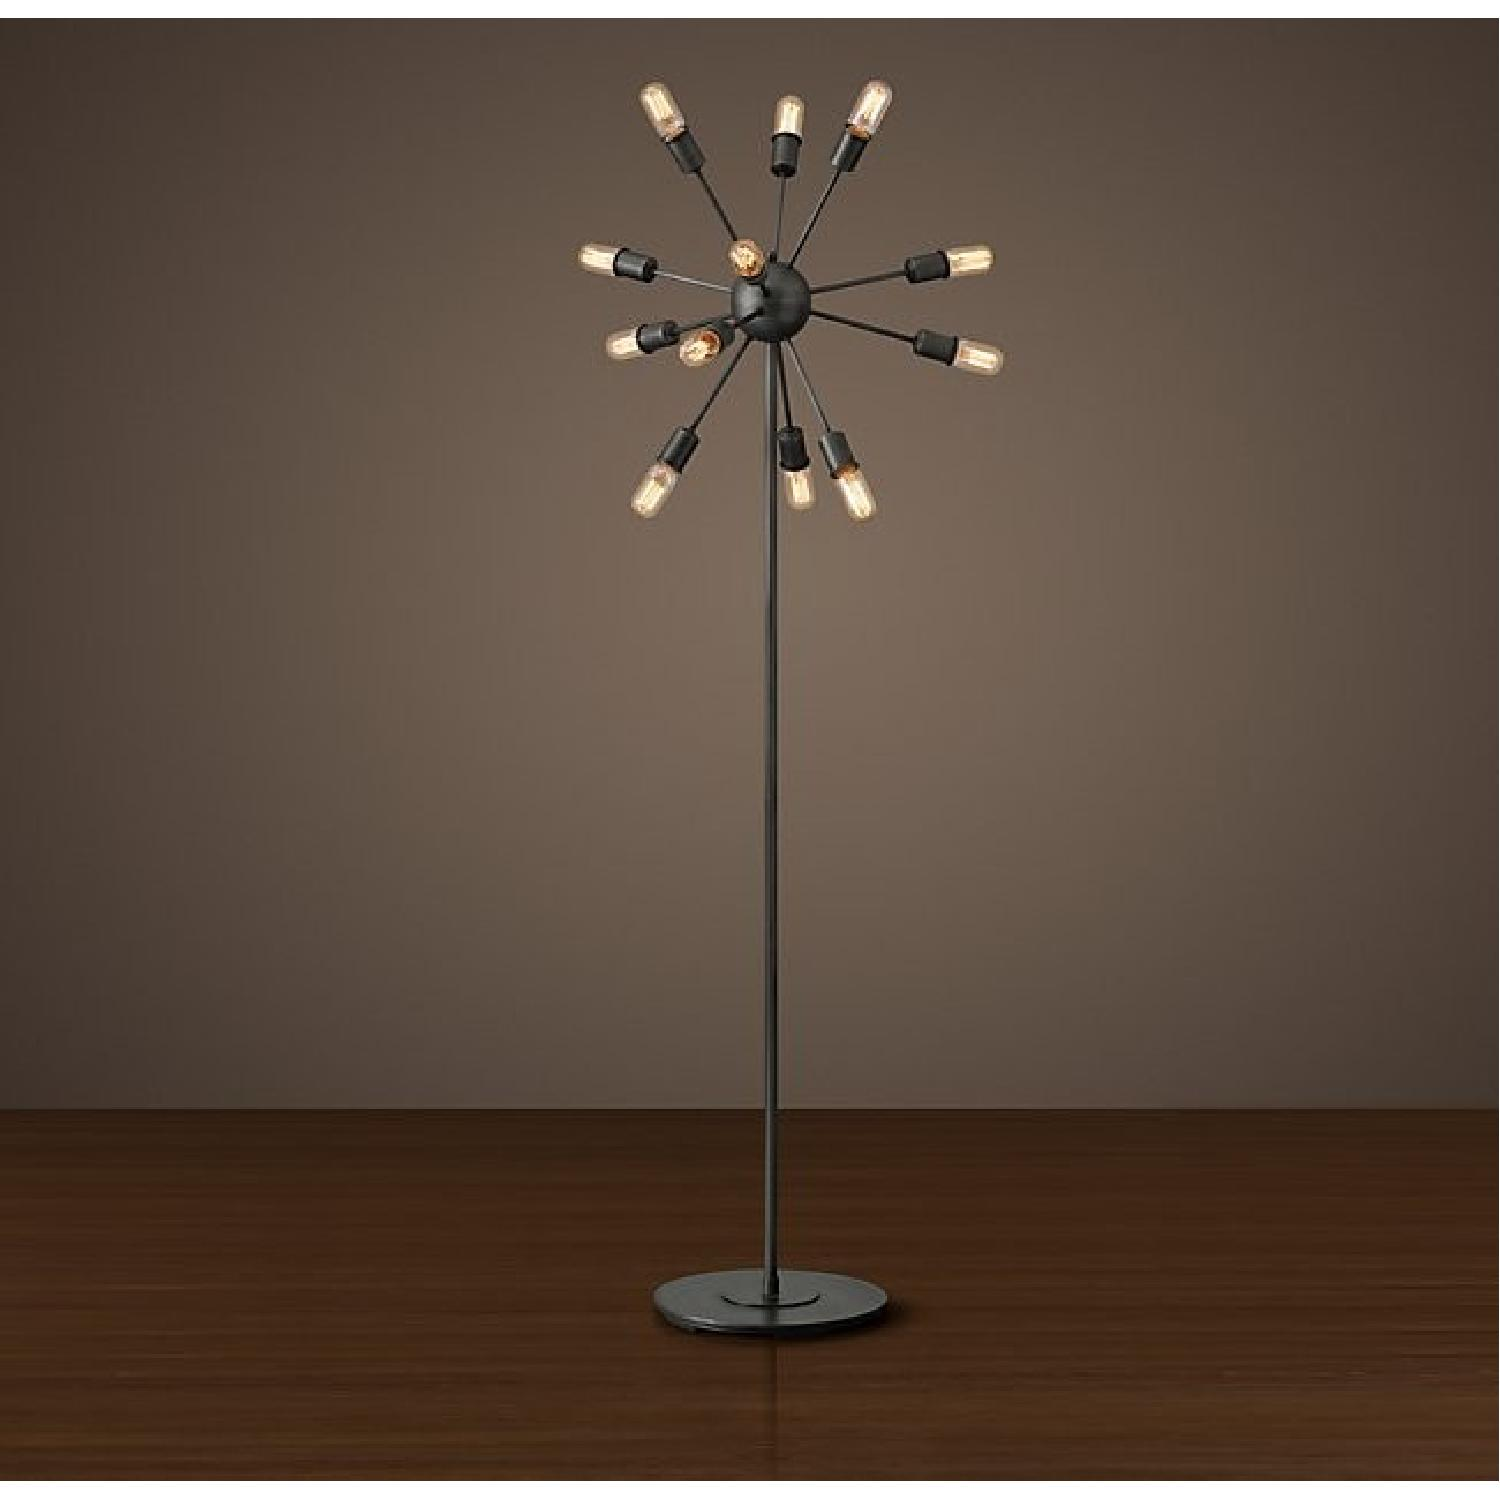 Restoration Hardware Sputnik Filament Floor Lamp-0